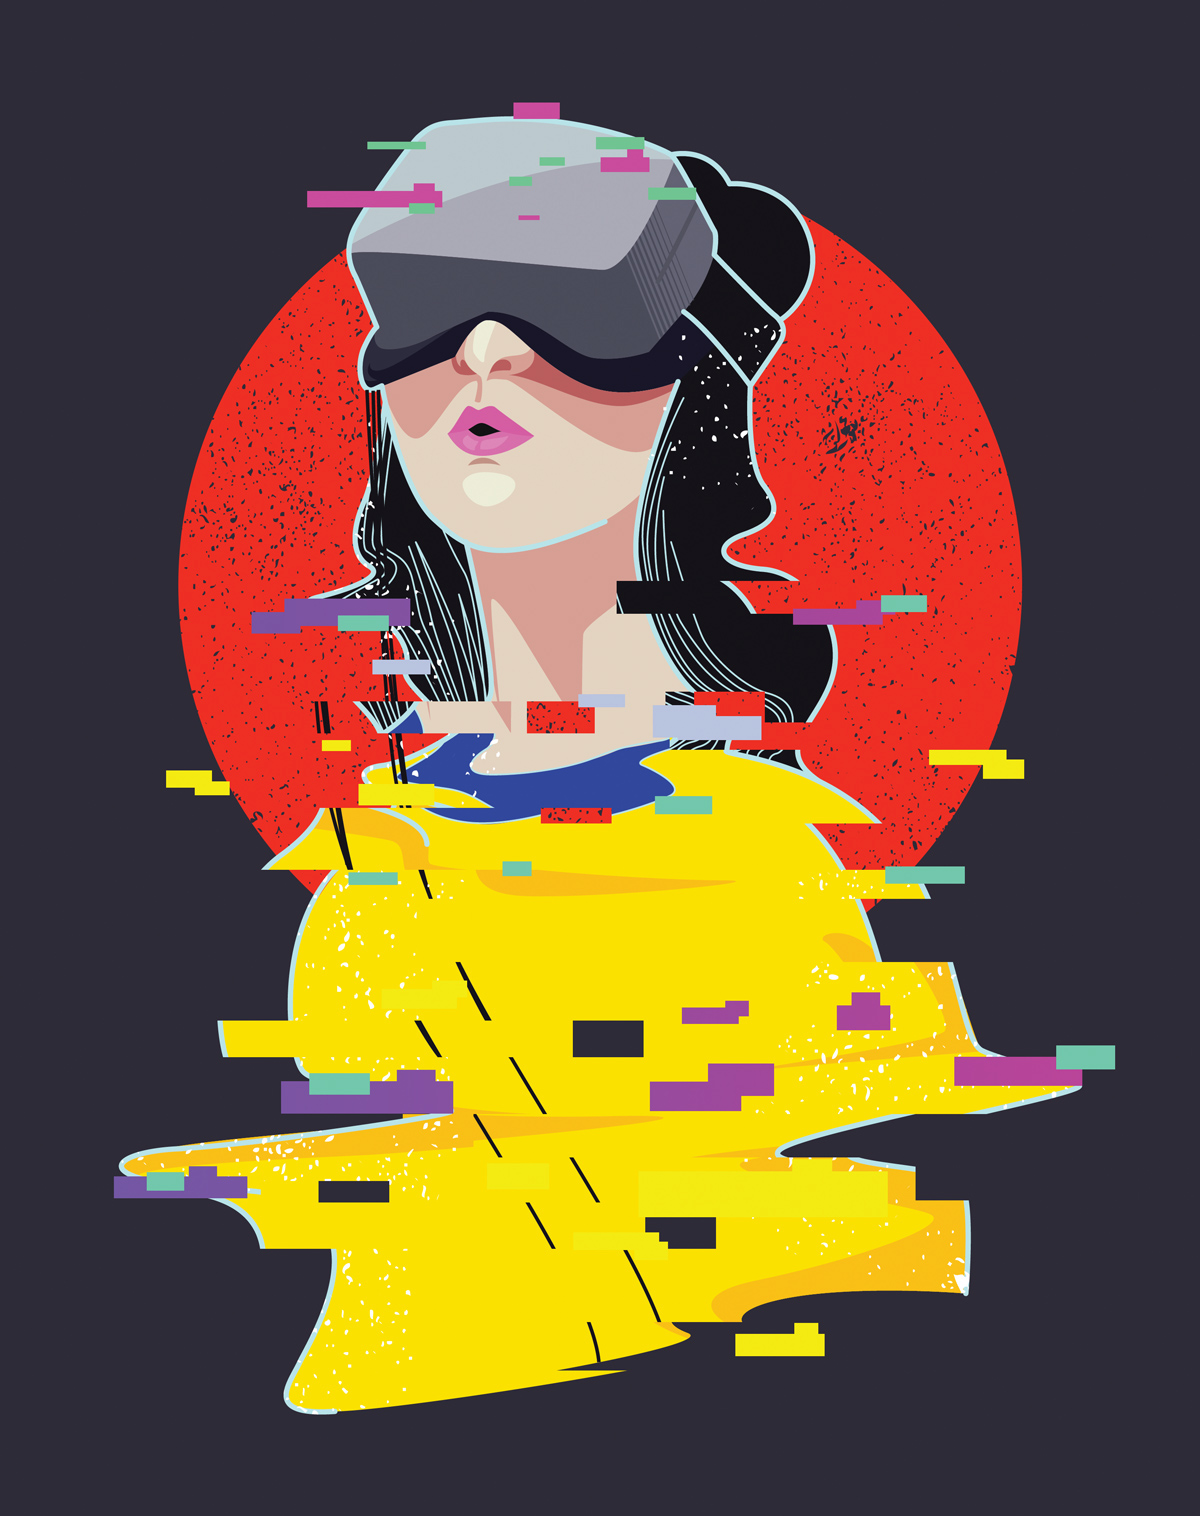 an image of a white woman with black hair wearing a VR headset